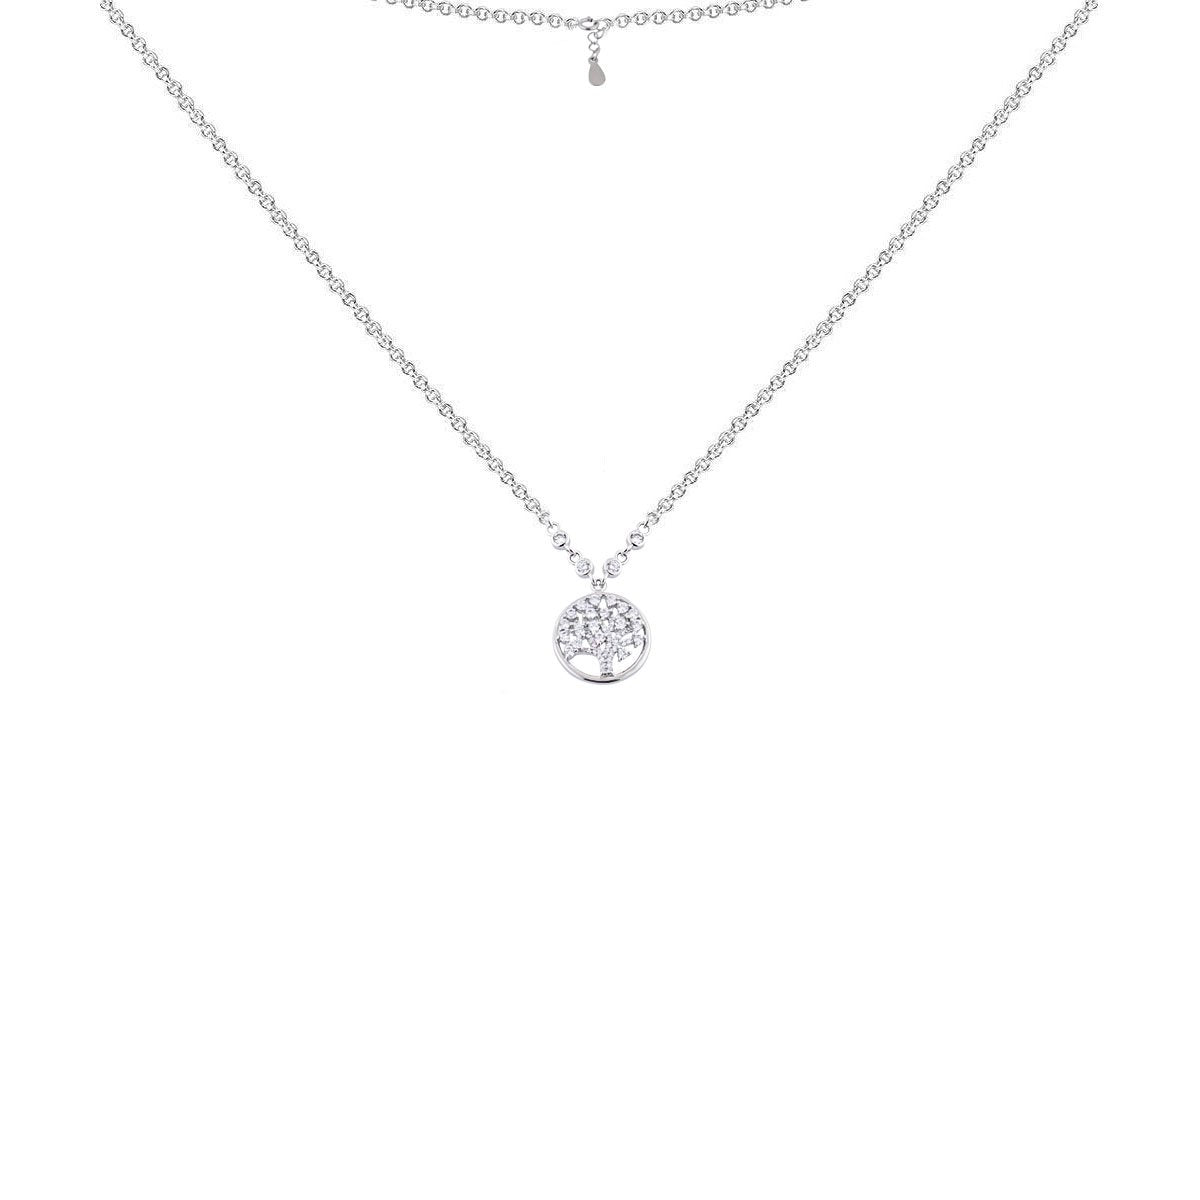 Necklace N1291 - 925 Sterling Silver